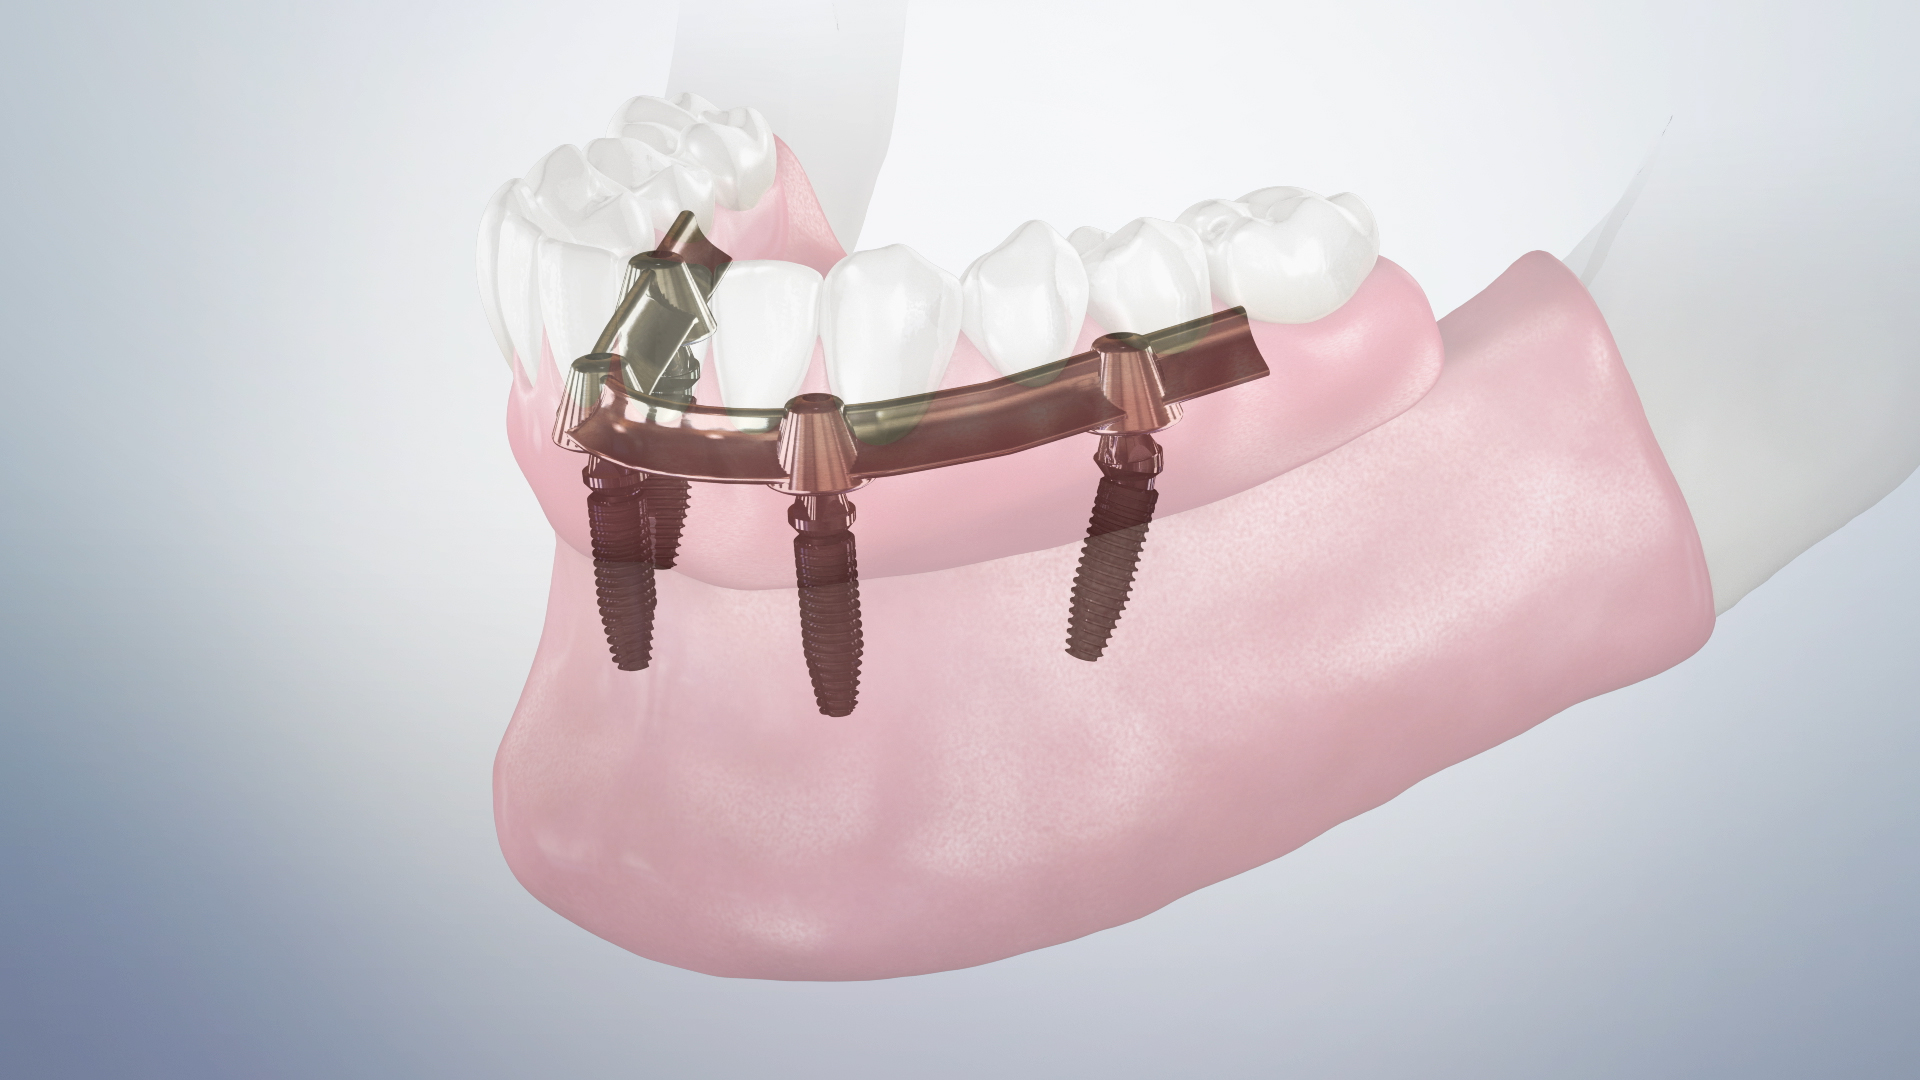 Thumbnail for a video on Post-Operative Instructions for Fixed-Hybrid Denture Placement